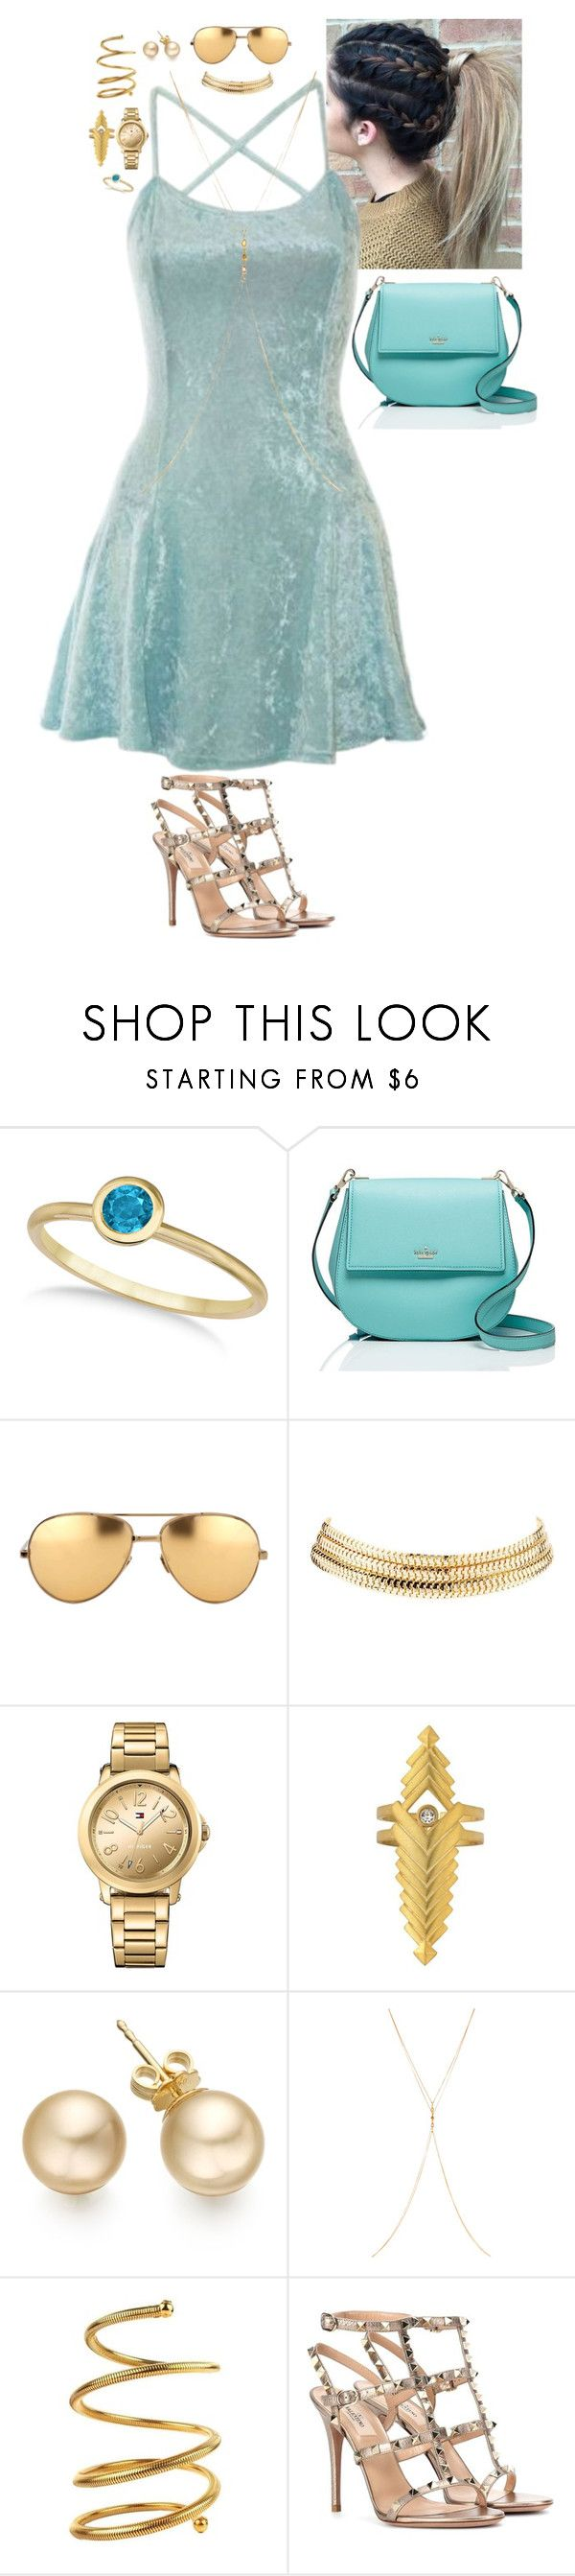 """Rebel Royal - Cocktails by Cody"" by stinze on Polyvore featuring Allurez, Kate Spade, Linda Farrow, Charlotte Russe, Tommy Hilfiger, Chan Luu, Chanel and Valentino"